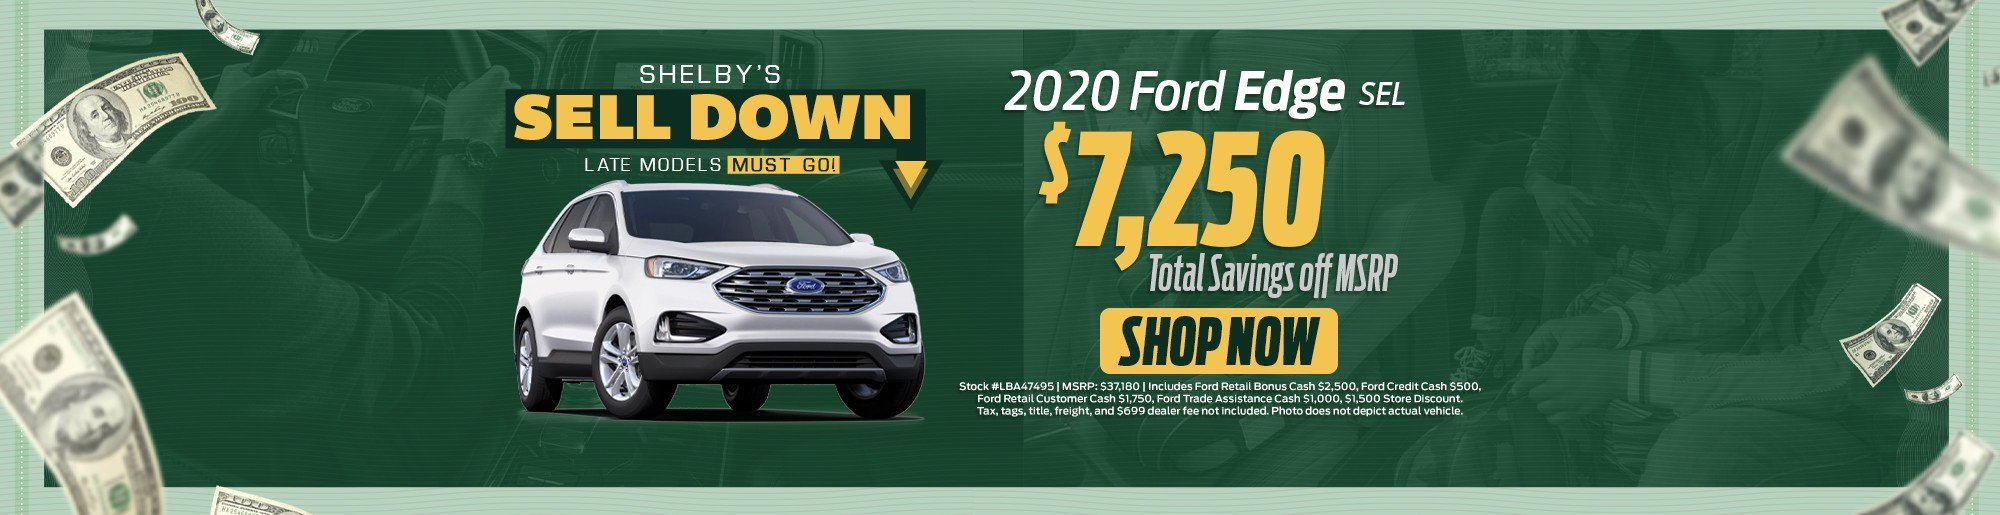 Ford Edge deals near me, Key Scales FL